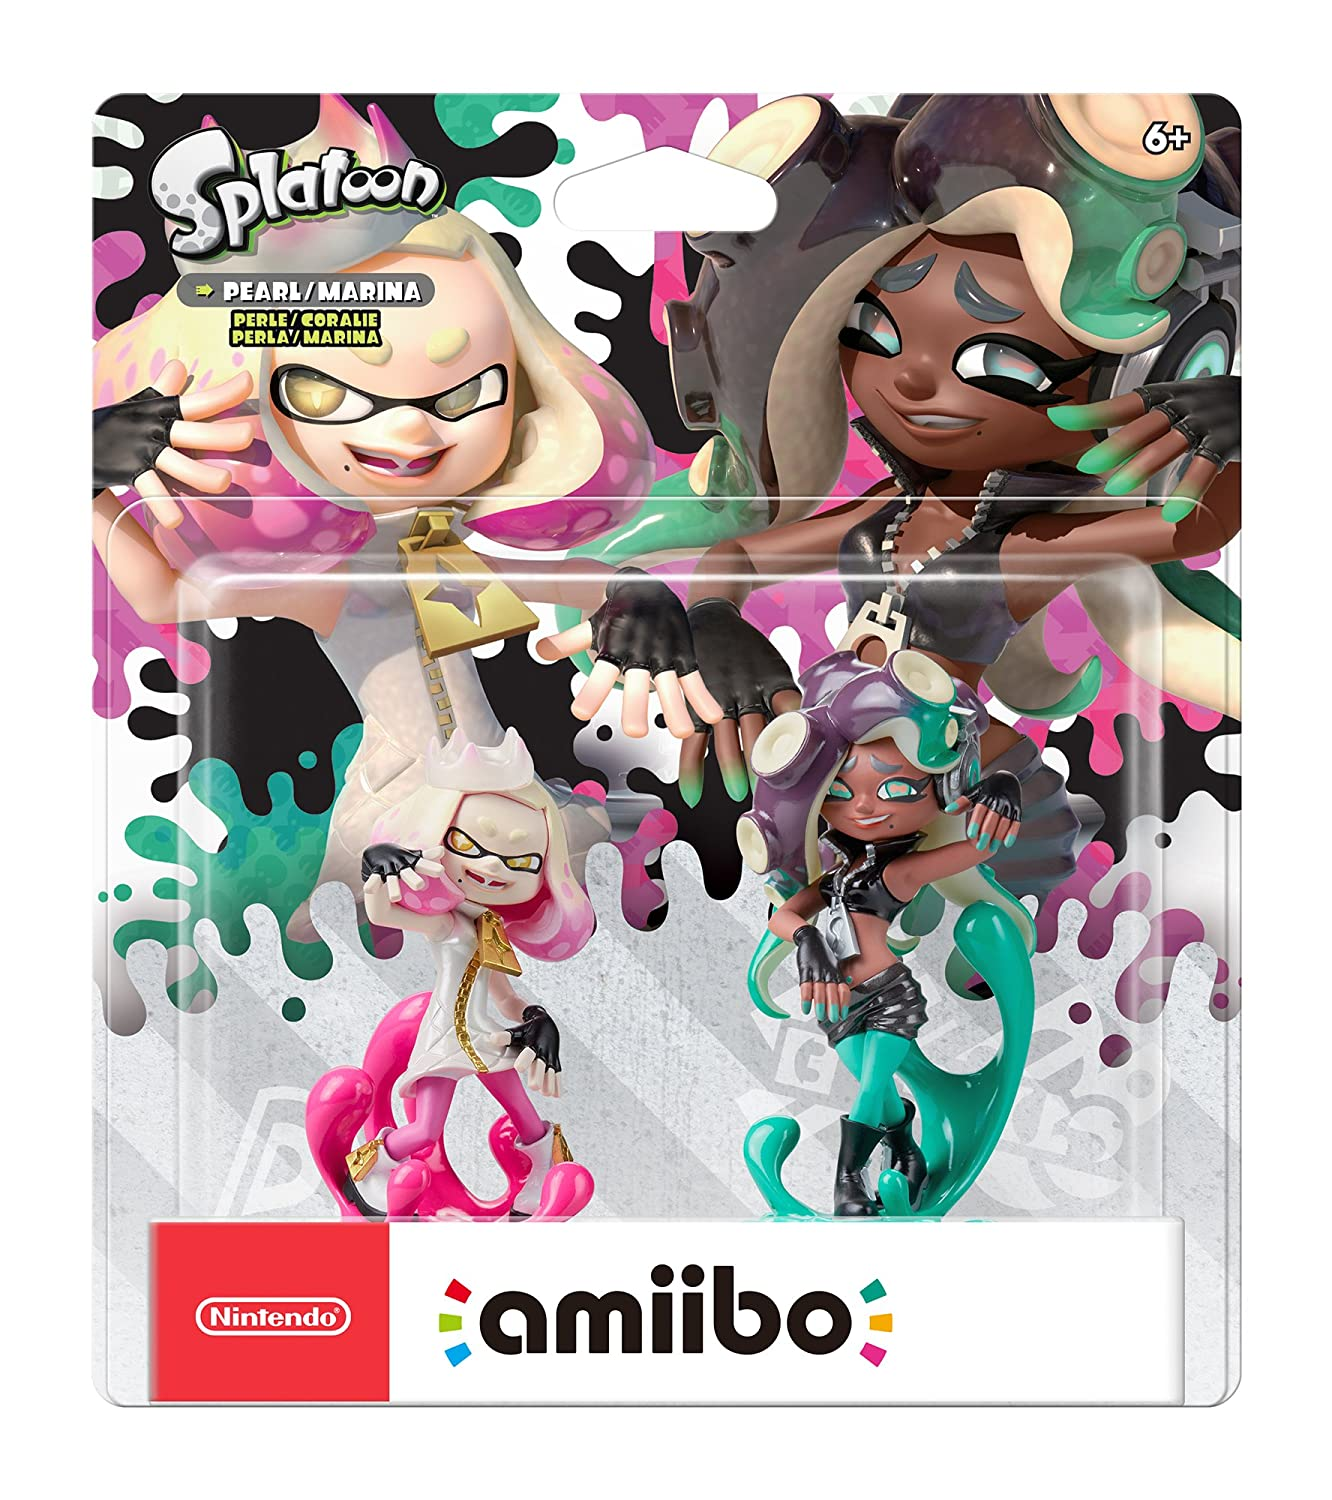 Nintendo Amiibo Pearl Marina 2 Pack Splatoon 2 Video Games